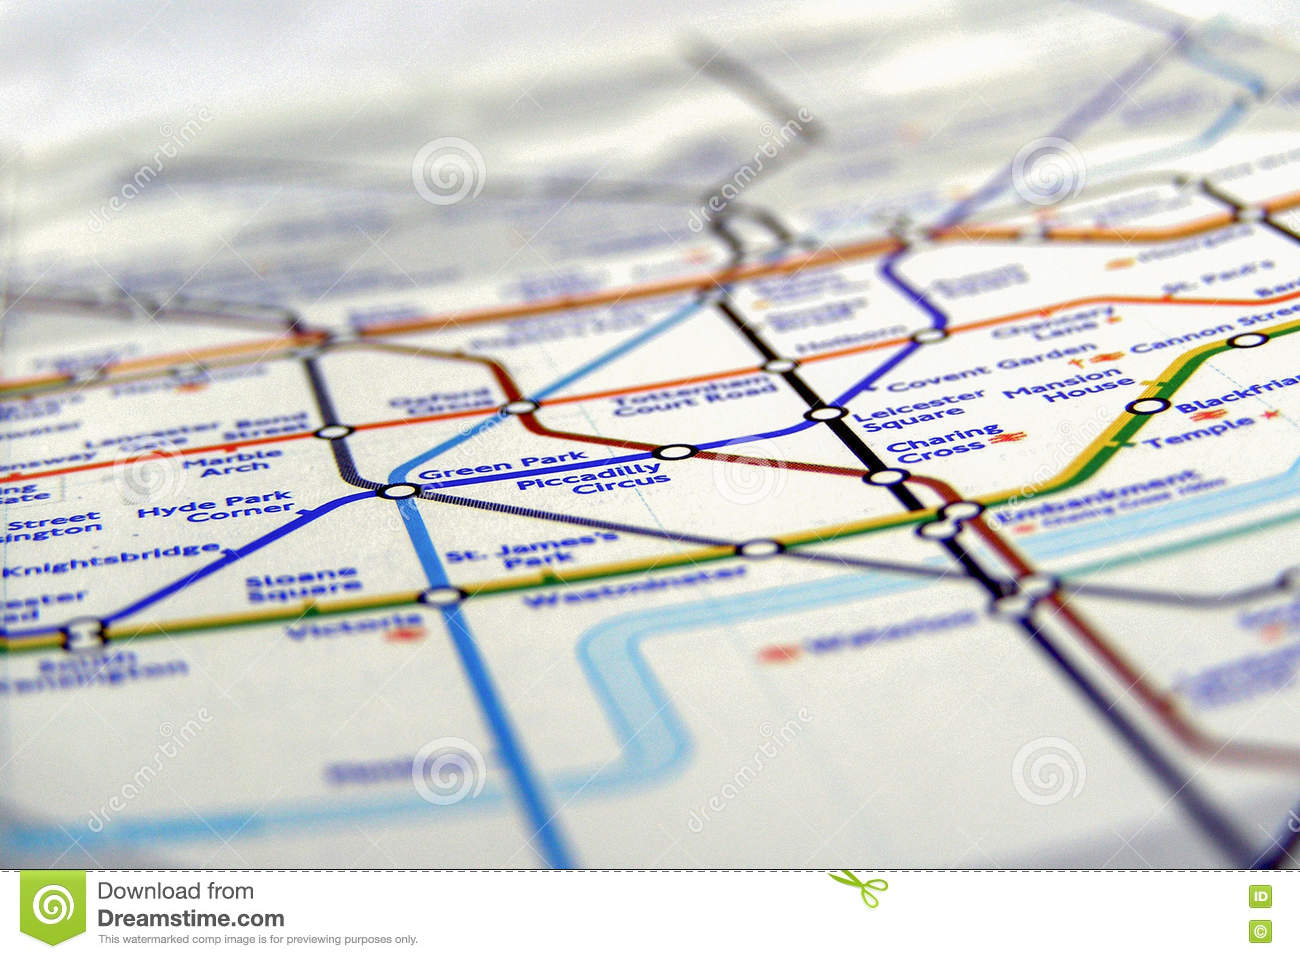 London In England Map.Tube Map Of London Underground Editorial Image Image Of Kingdom